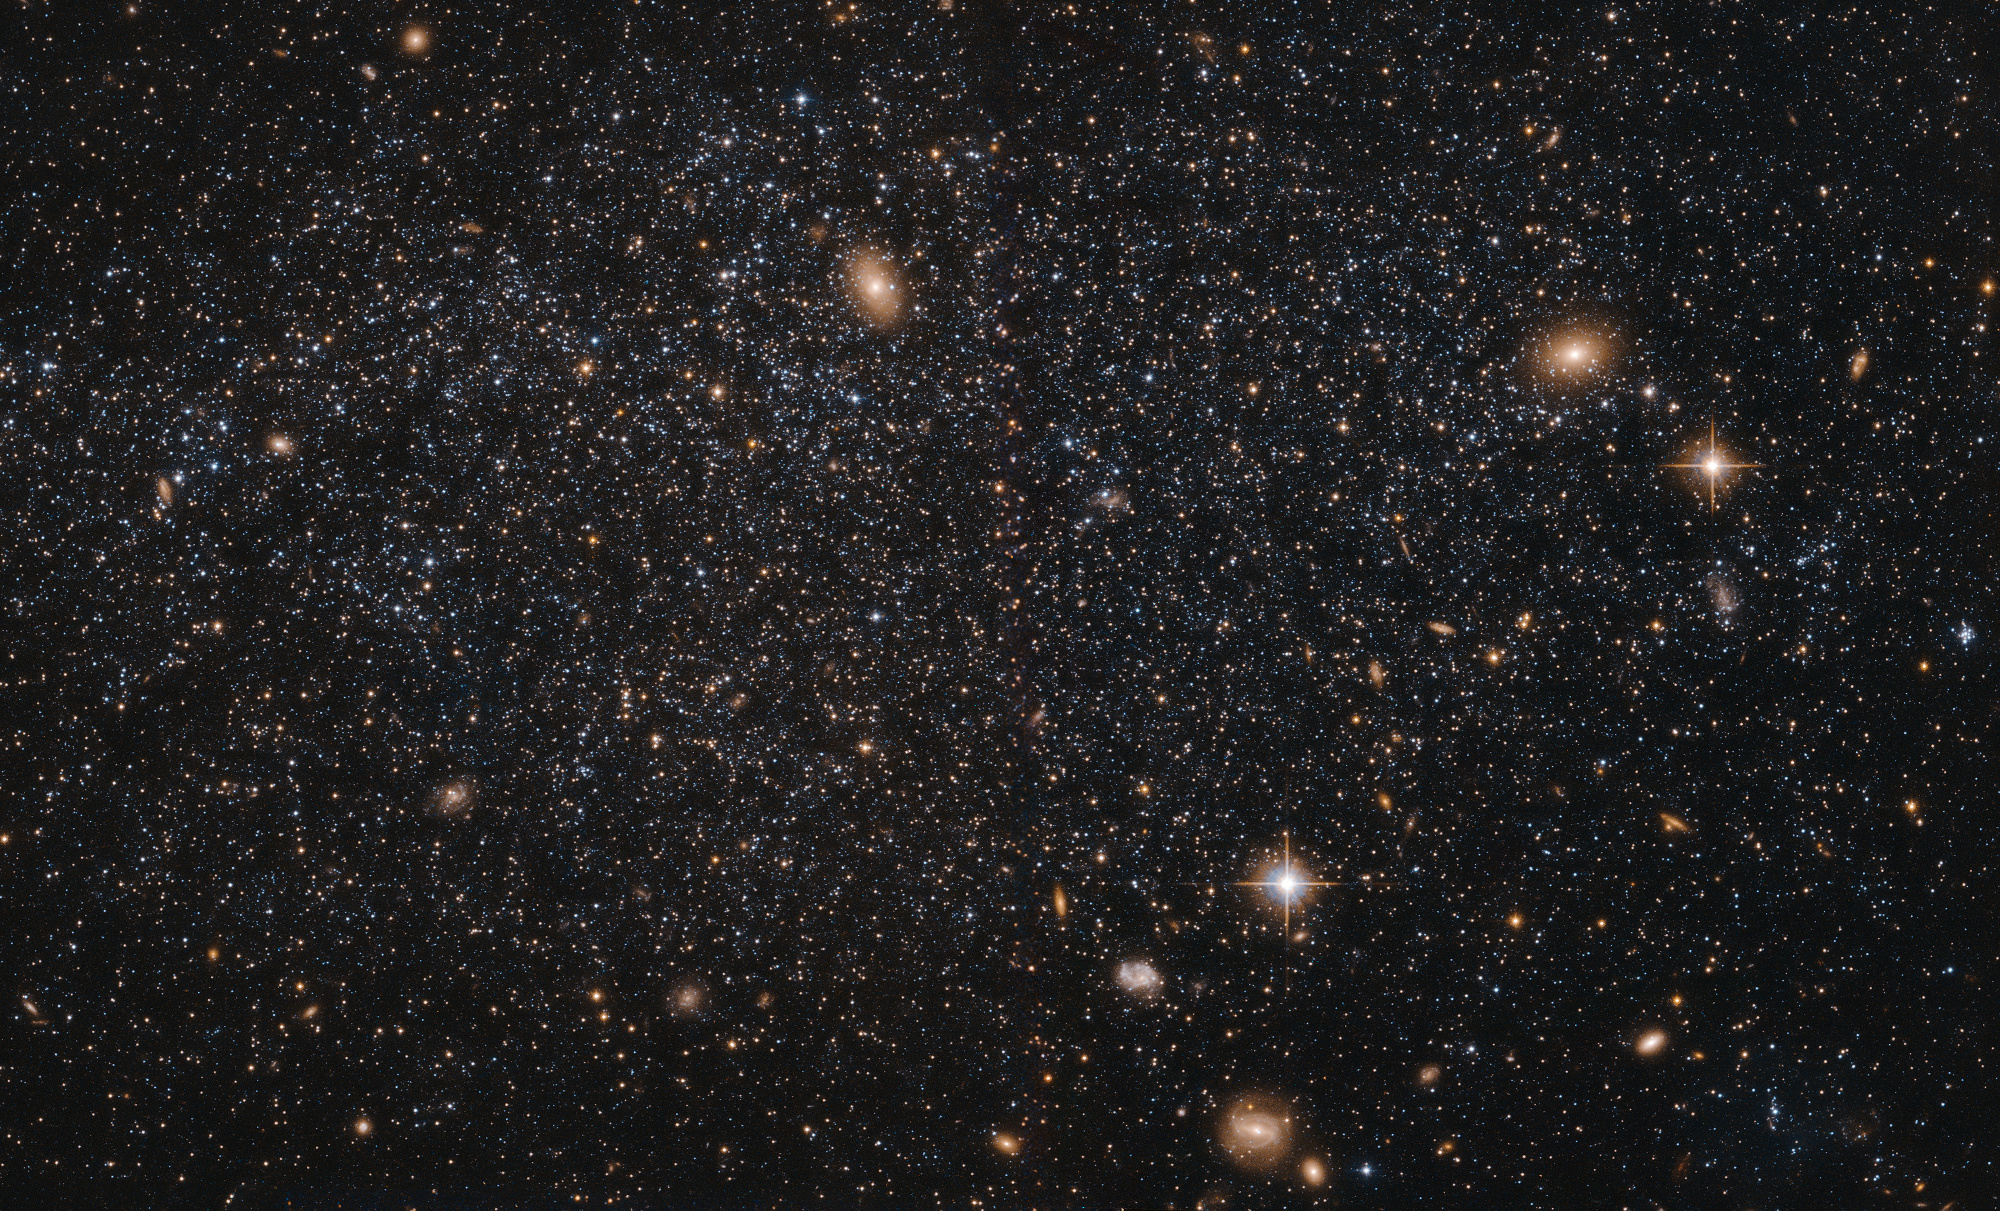 Local Group dwarf galaxy LeoA lies about 2.5million light-years from Earth. Its stars are so sparsely distributed that distant background galaxies are visible through it. Image credit: ESA/Hubble & NASA. Acknowledgement: Judy Schmidt.